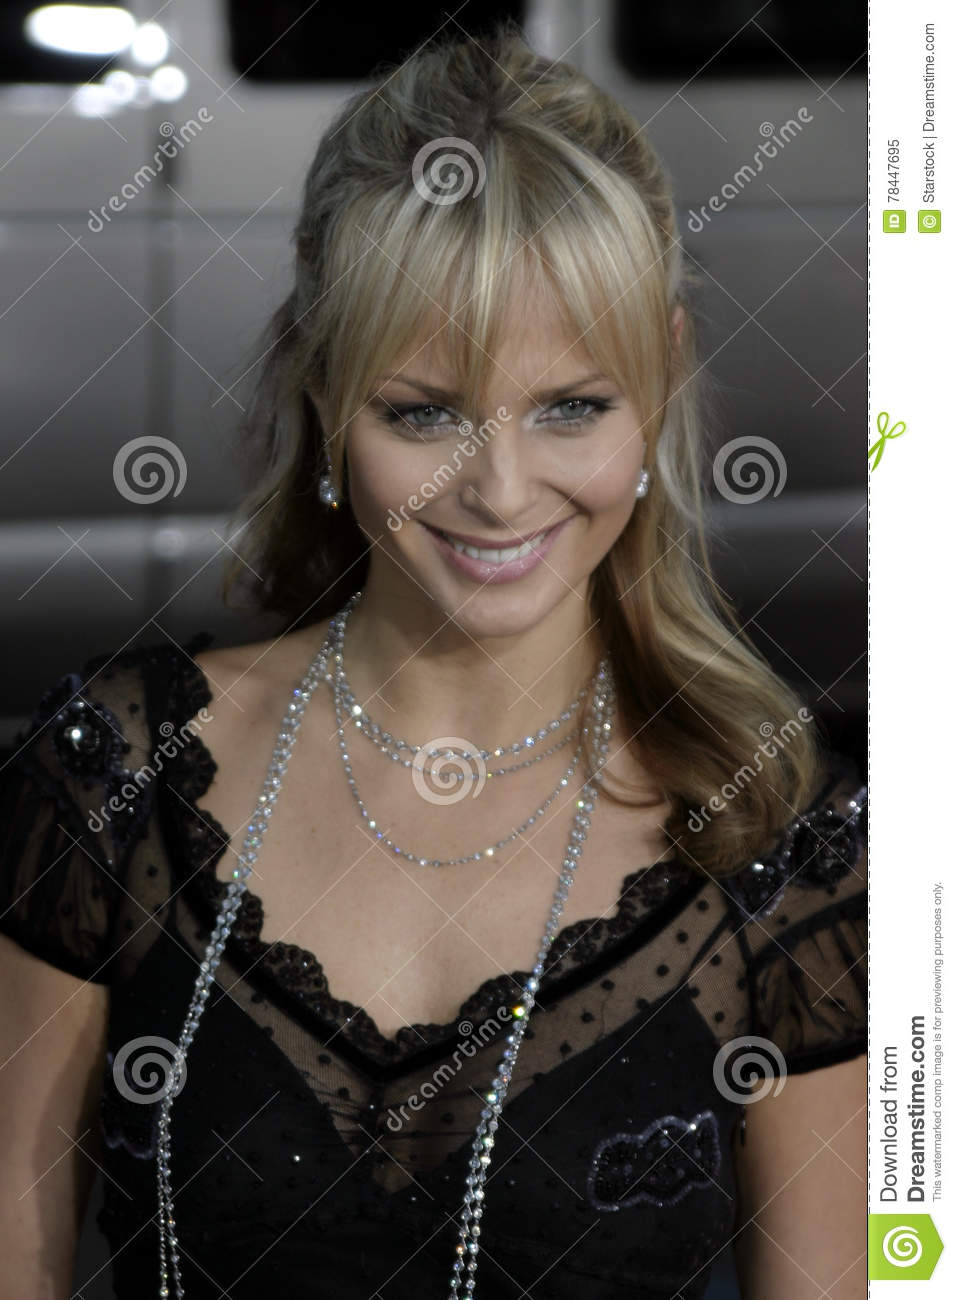 Images Izabella Scorupco naked (78 images), Is a cute